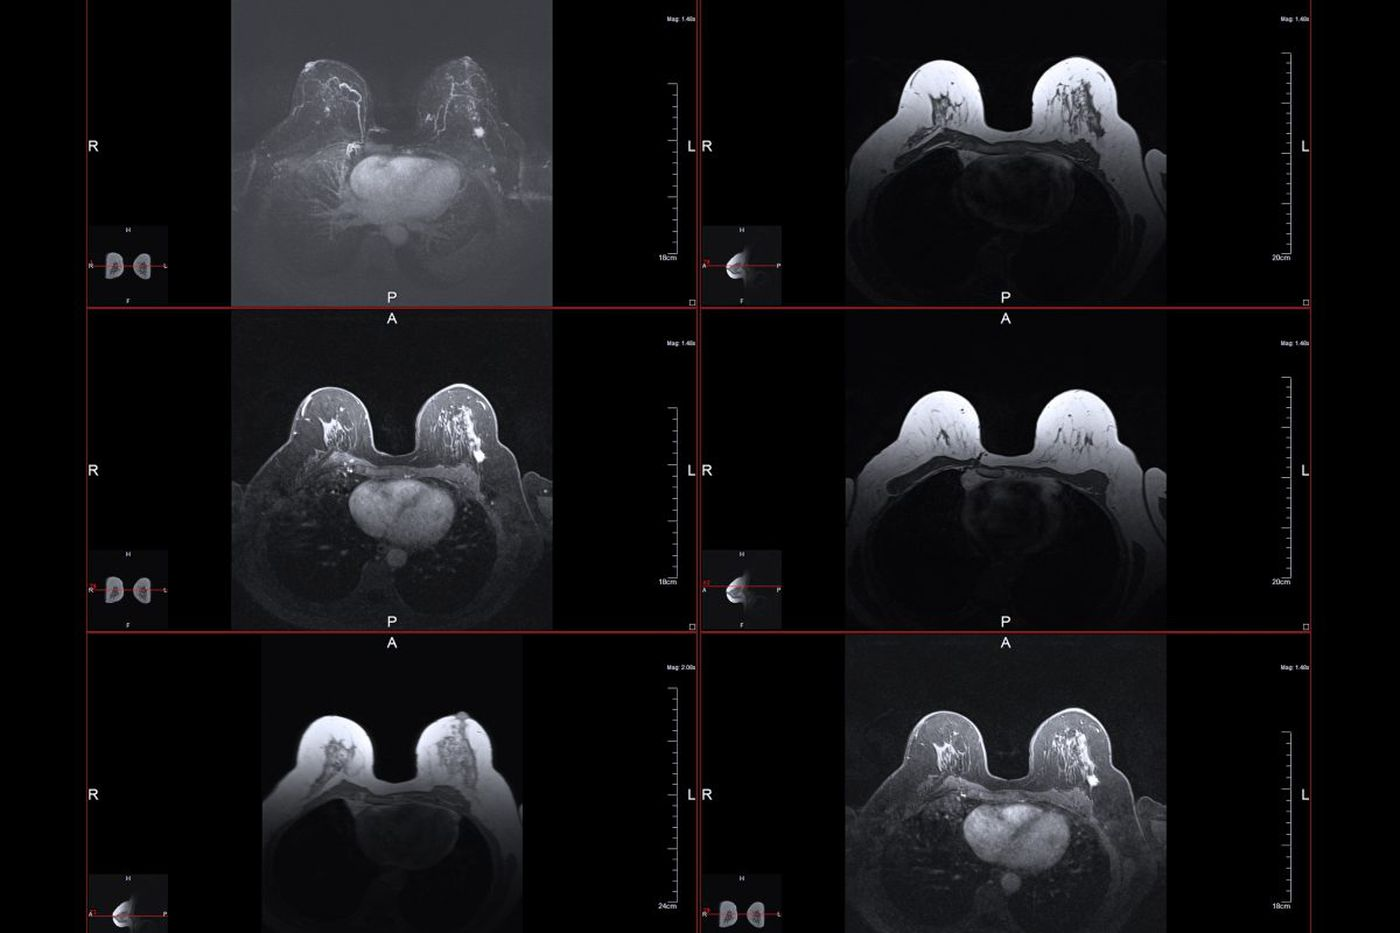 She was quoted $351 for a breast MRI. Then she was charged $4,650